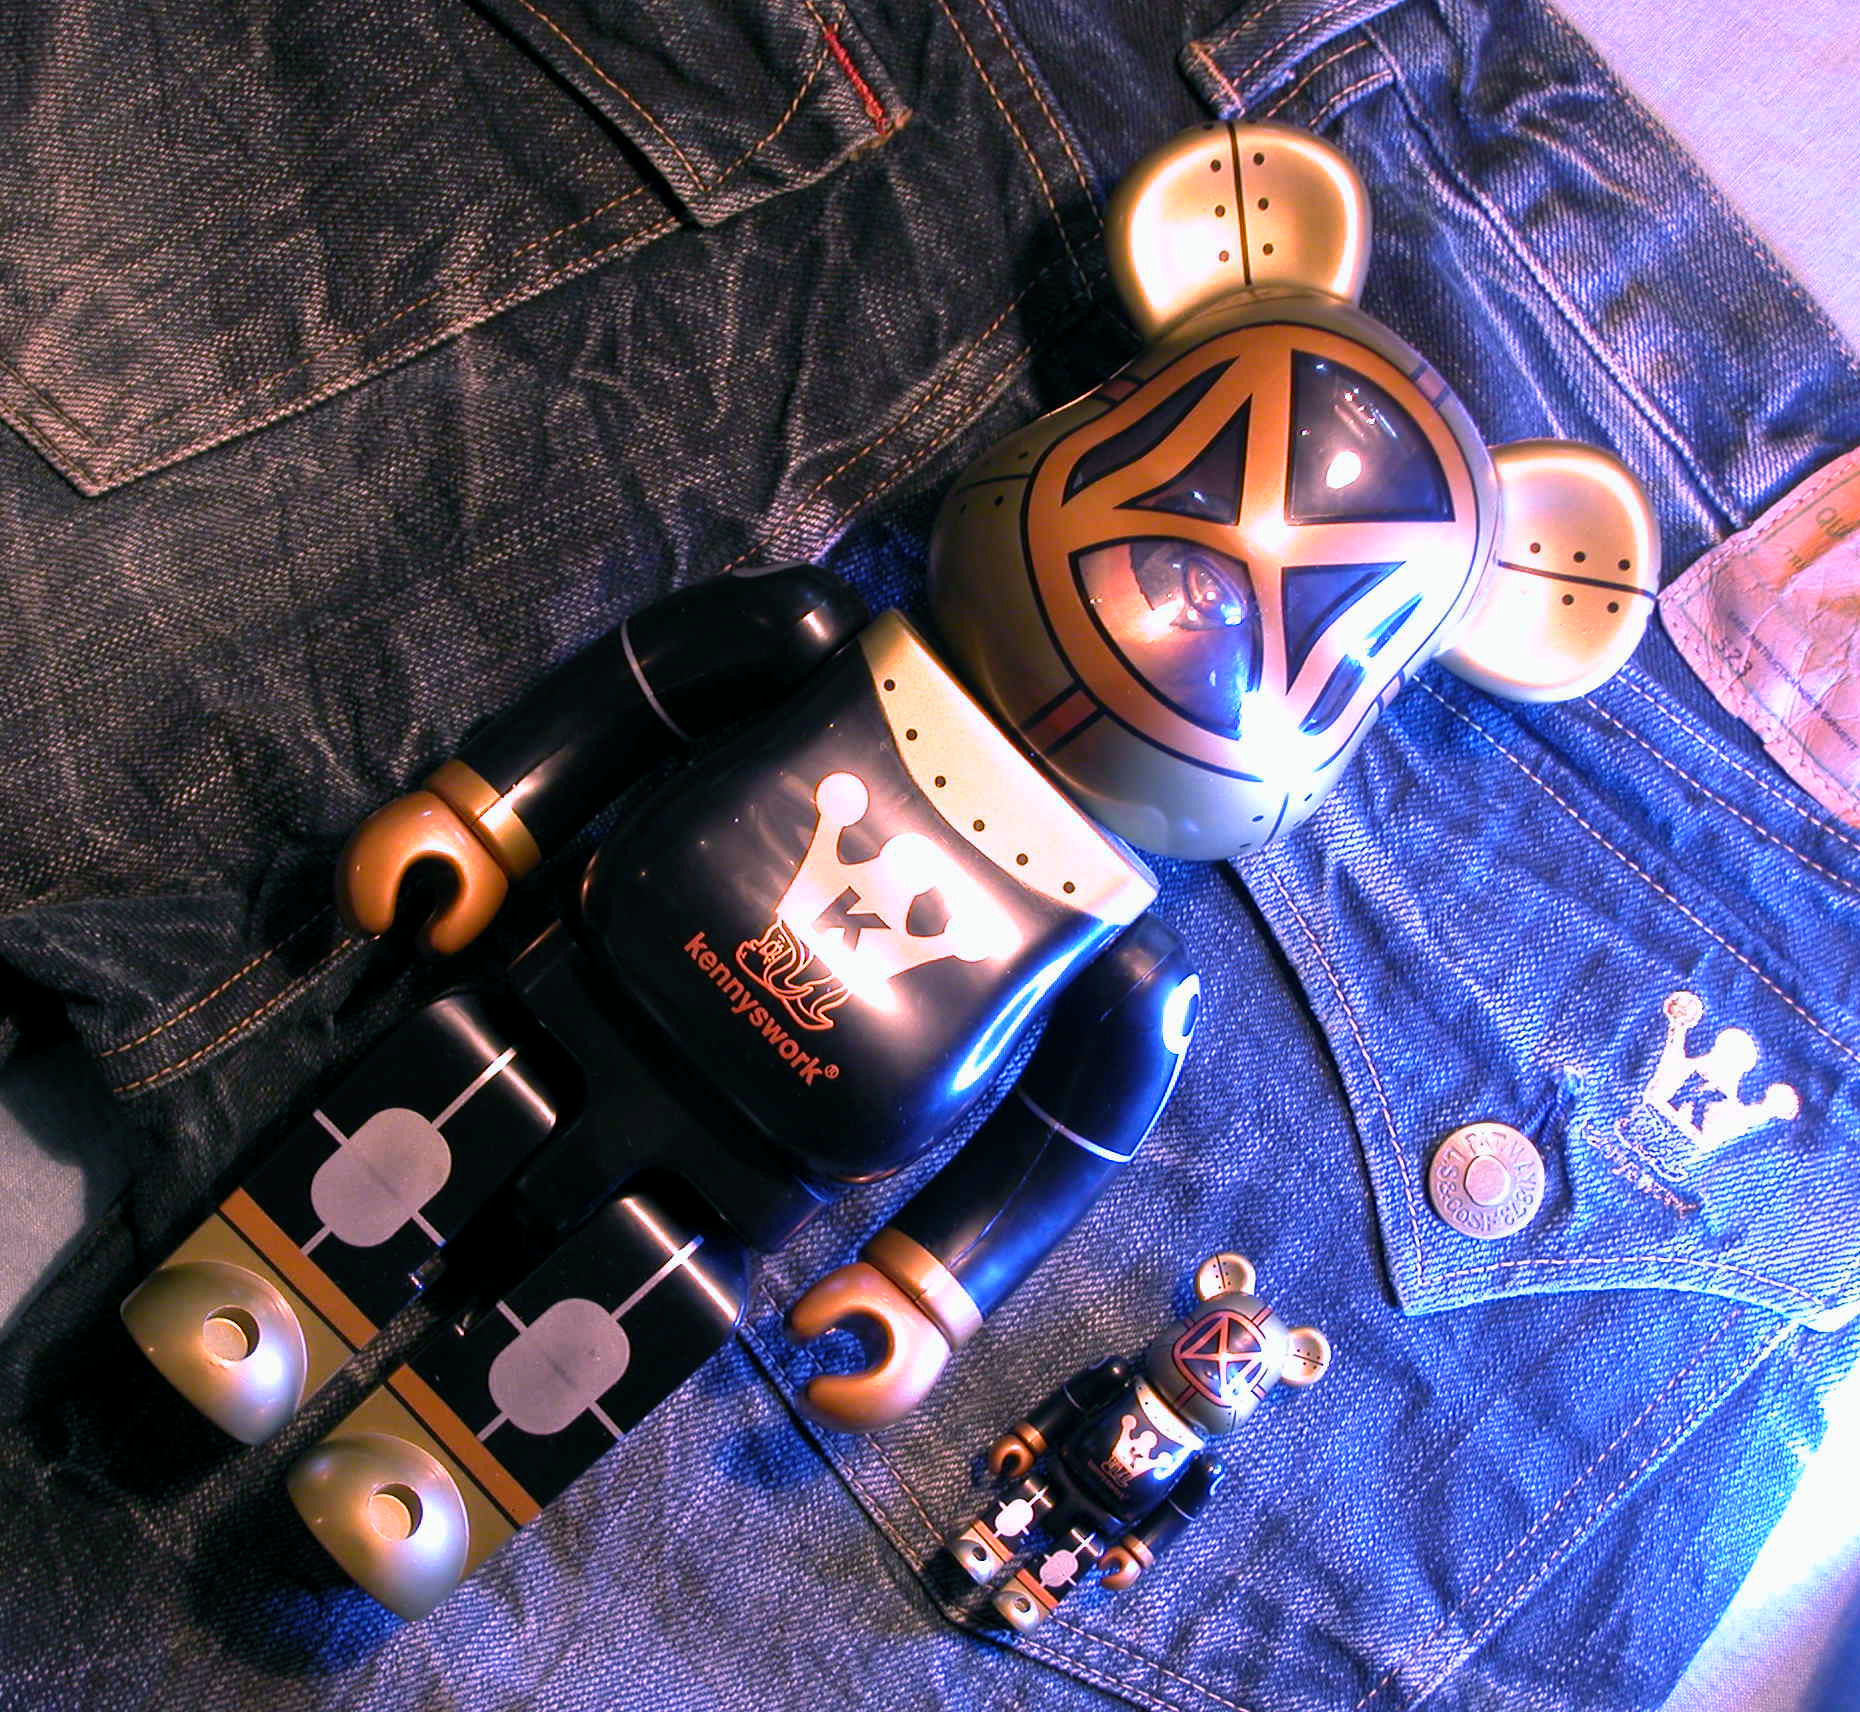 copperhead bearbrick and  jeans